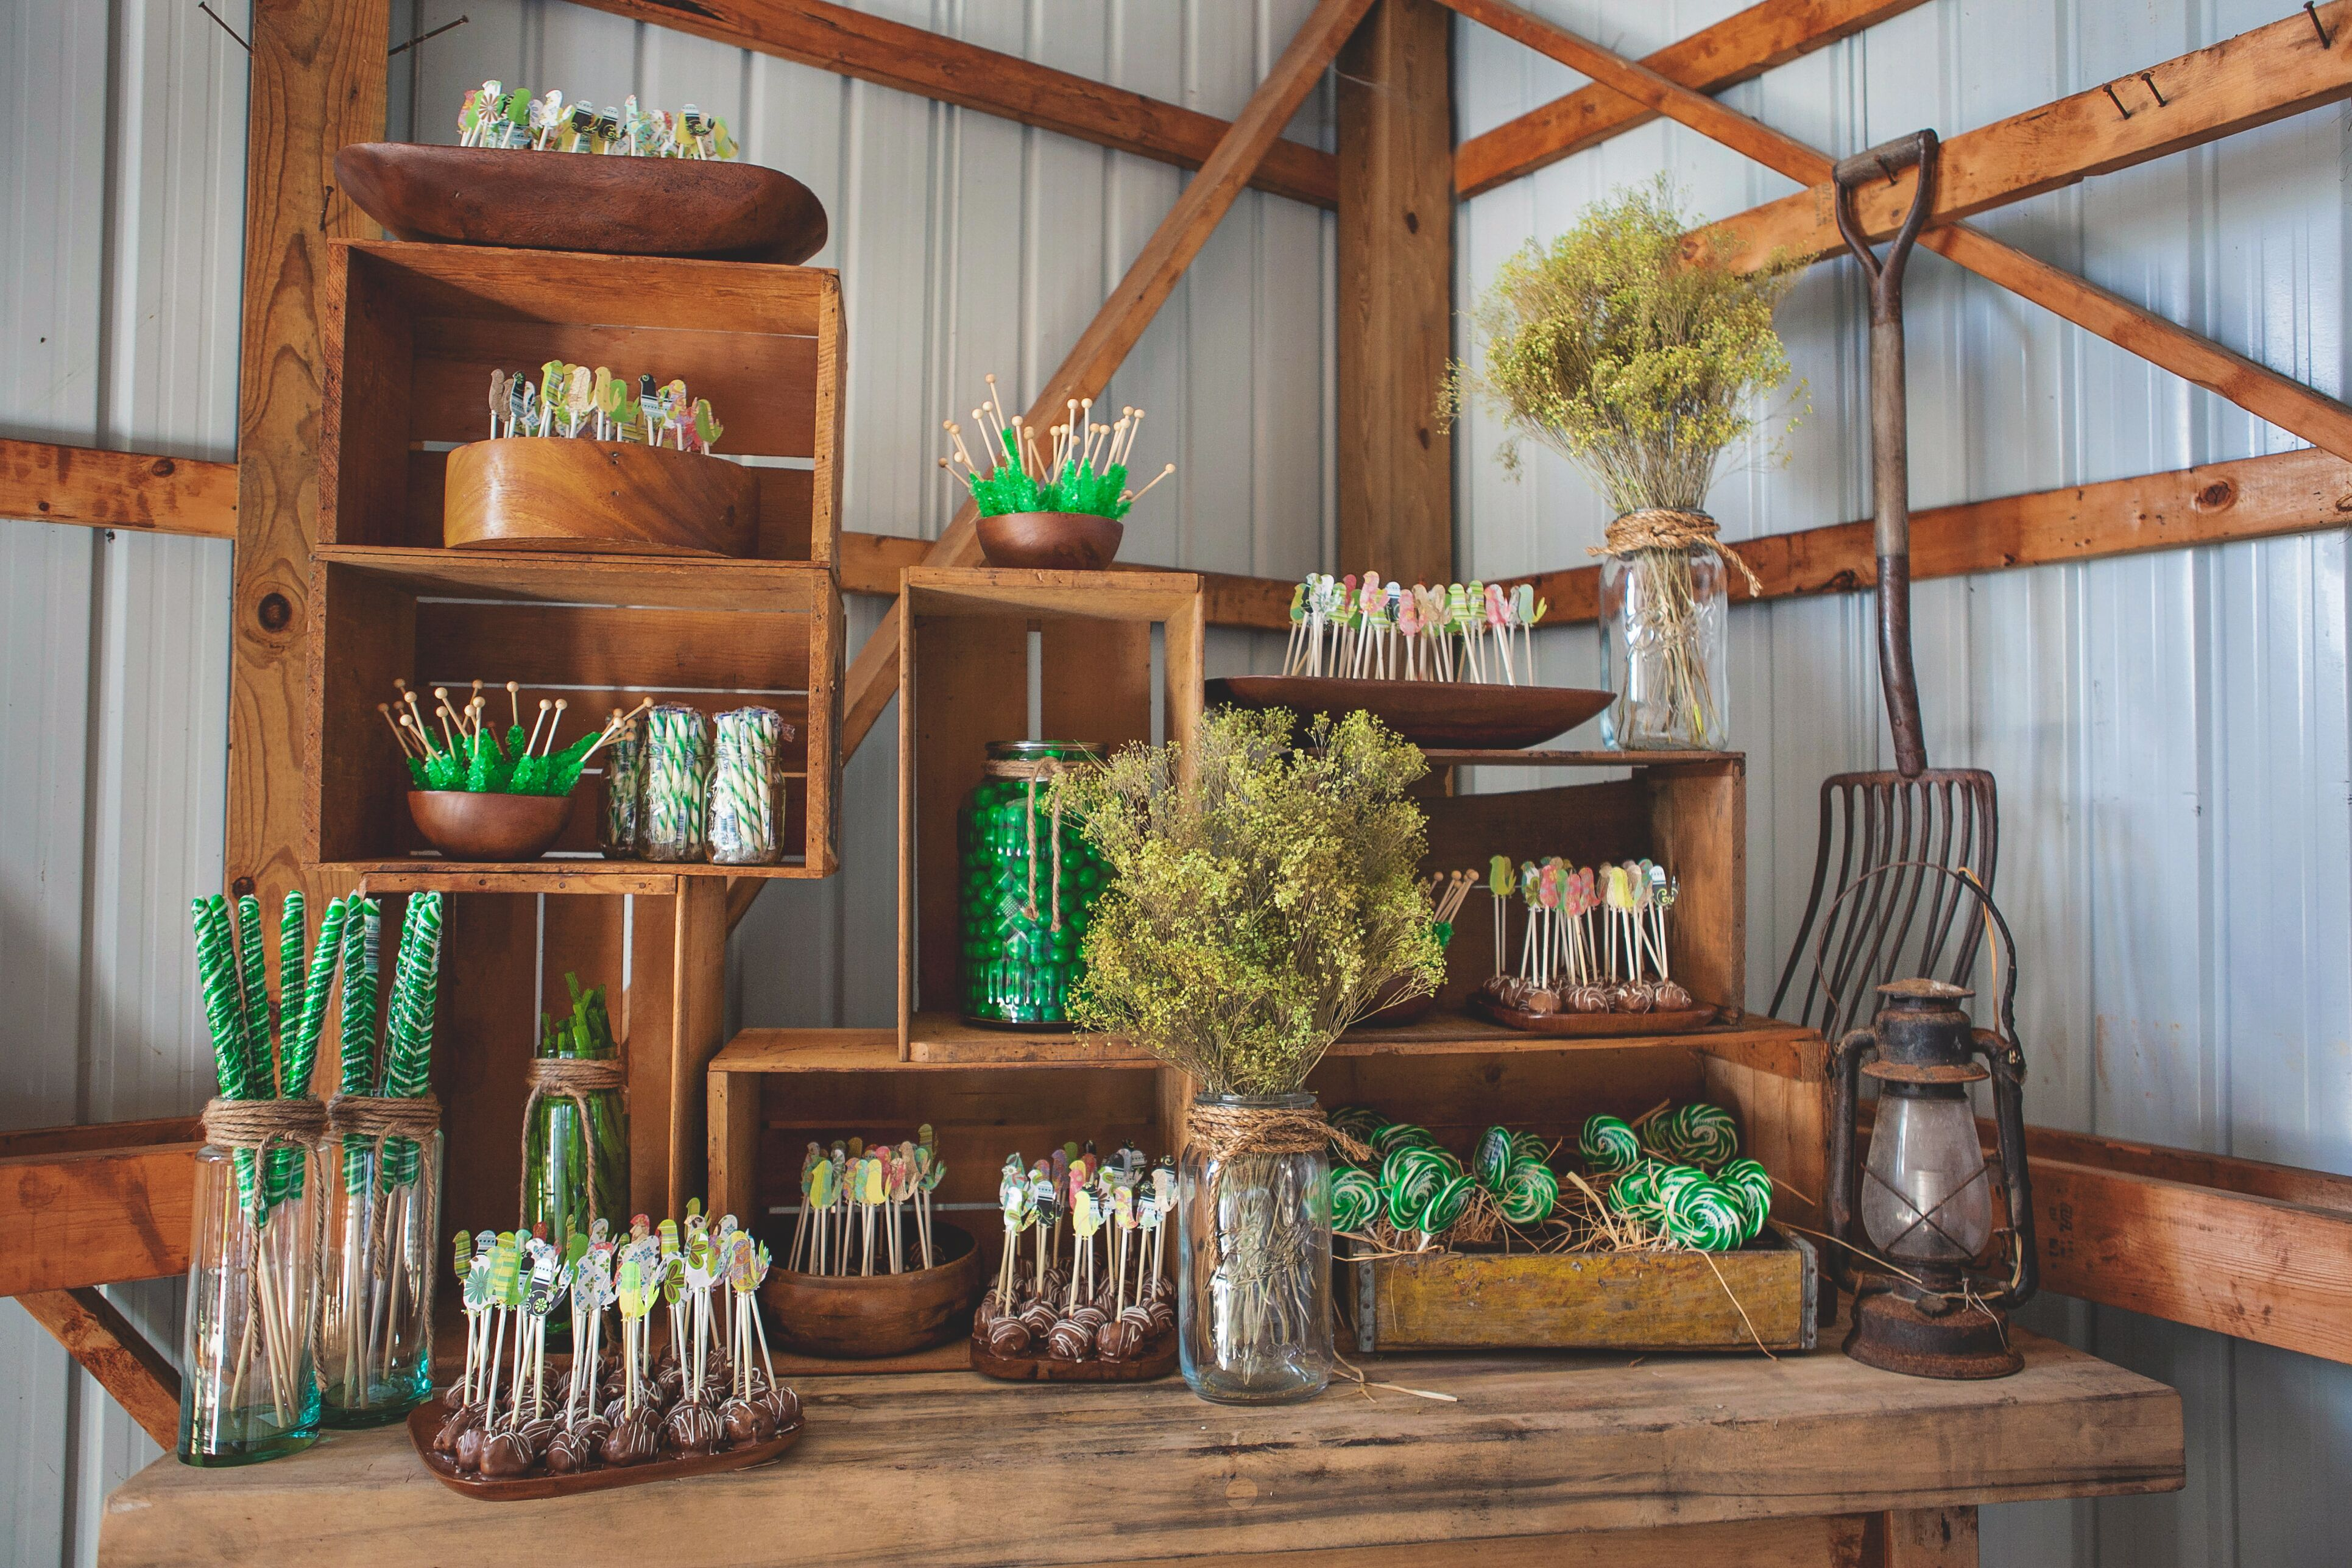 Wood Dessert Table ~ Rustic wooden dessert table with green candy